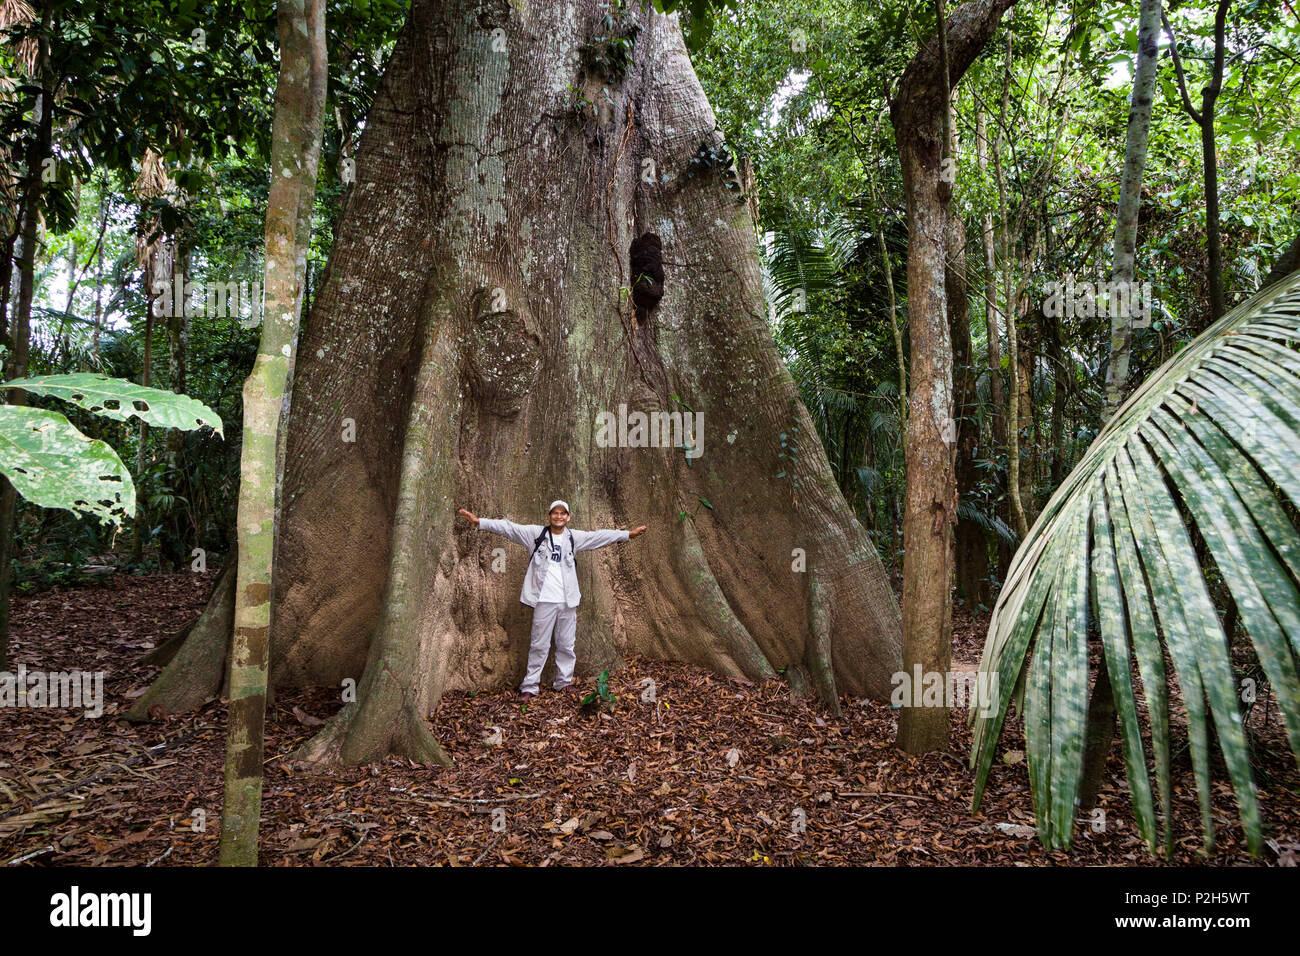 Giant tree with buttress roots in the rainforest at Tambopata river, Tambopata National Reserve, Peru, South America - Stock Image